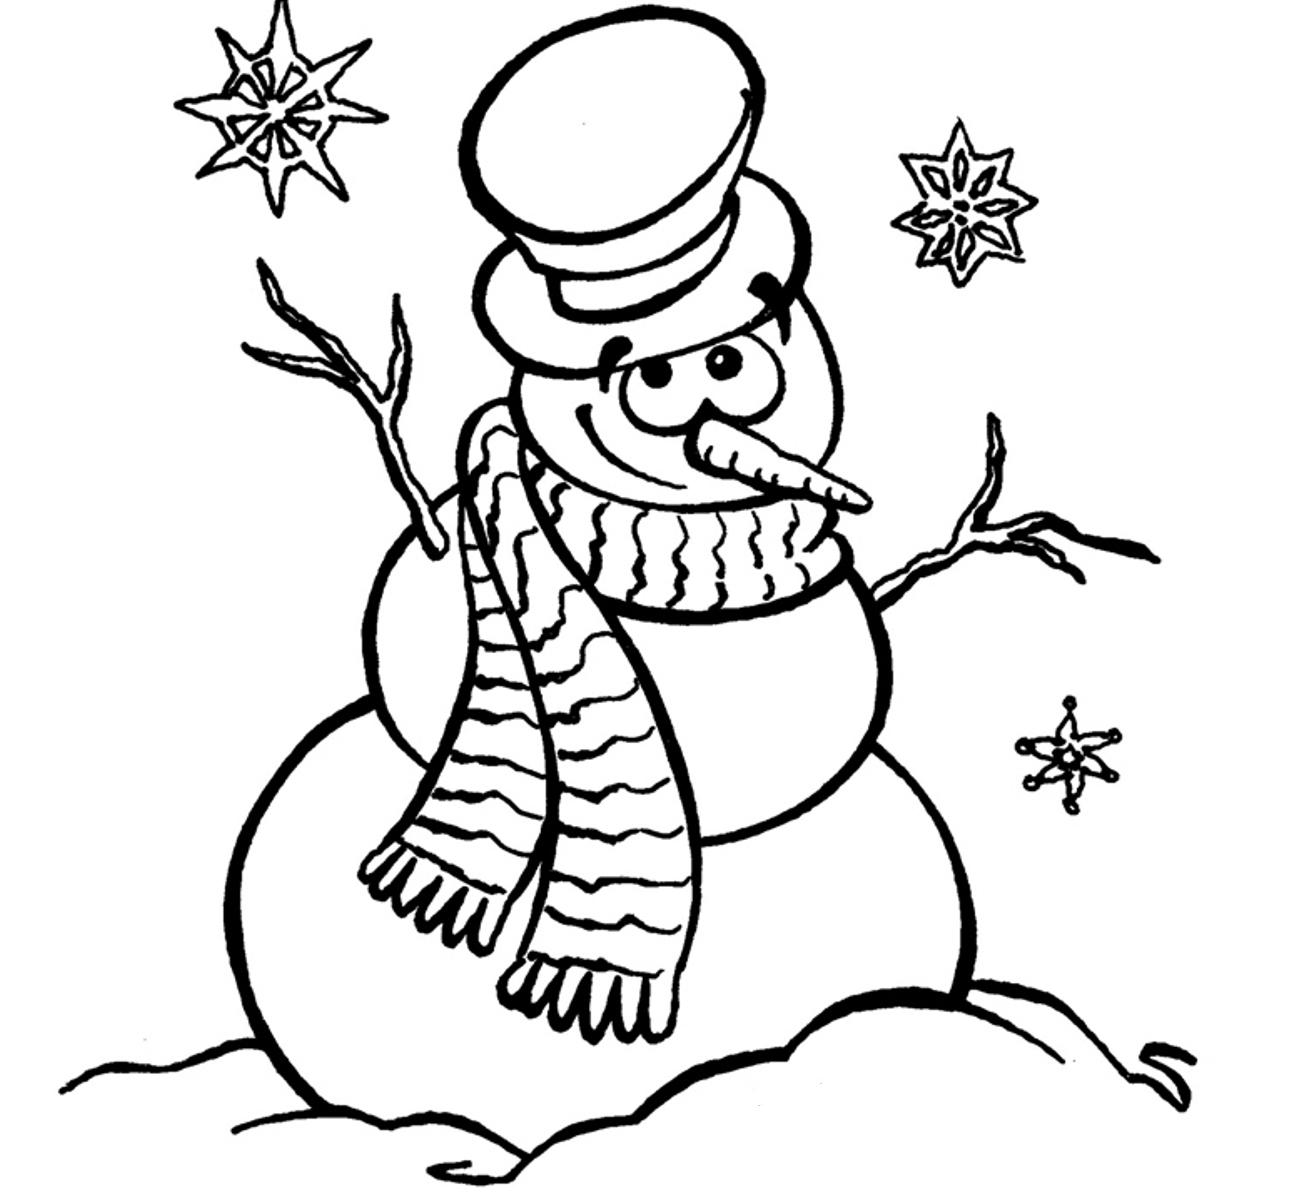 1291x1194 Modest Coloring Pages Of Snowmen Free Printabl